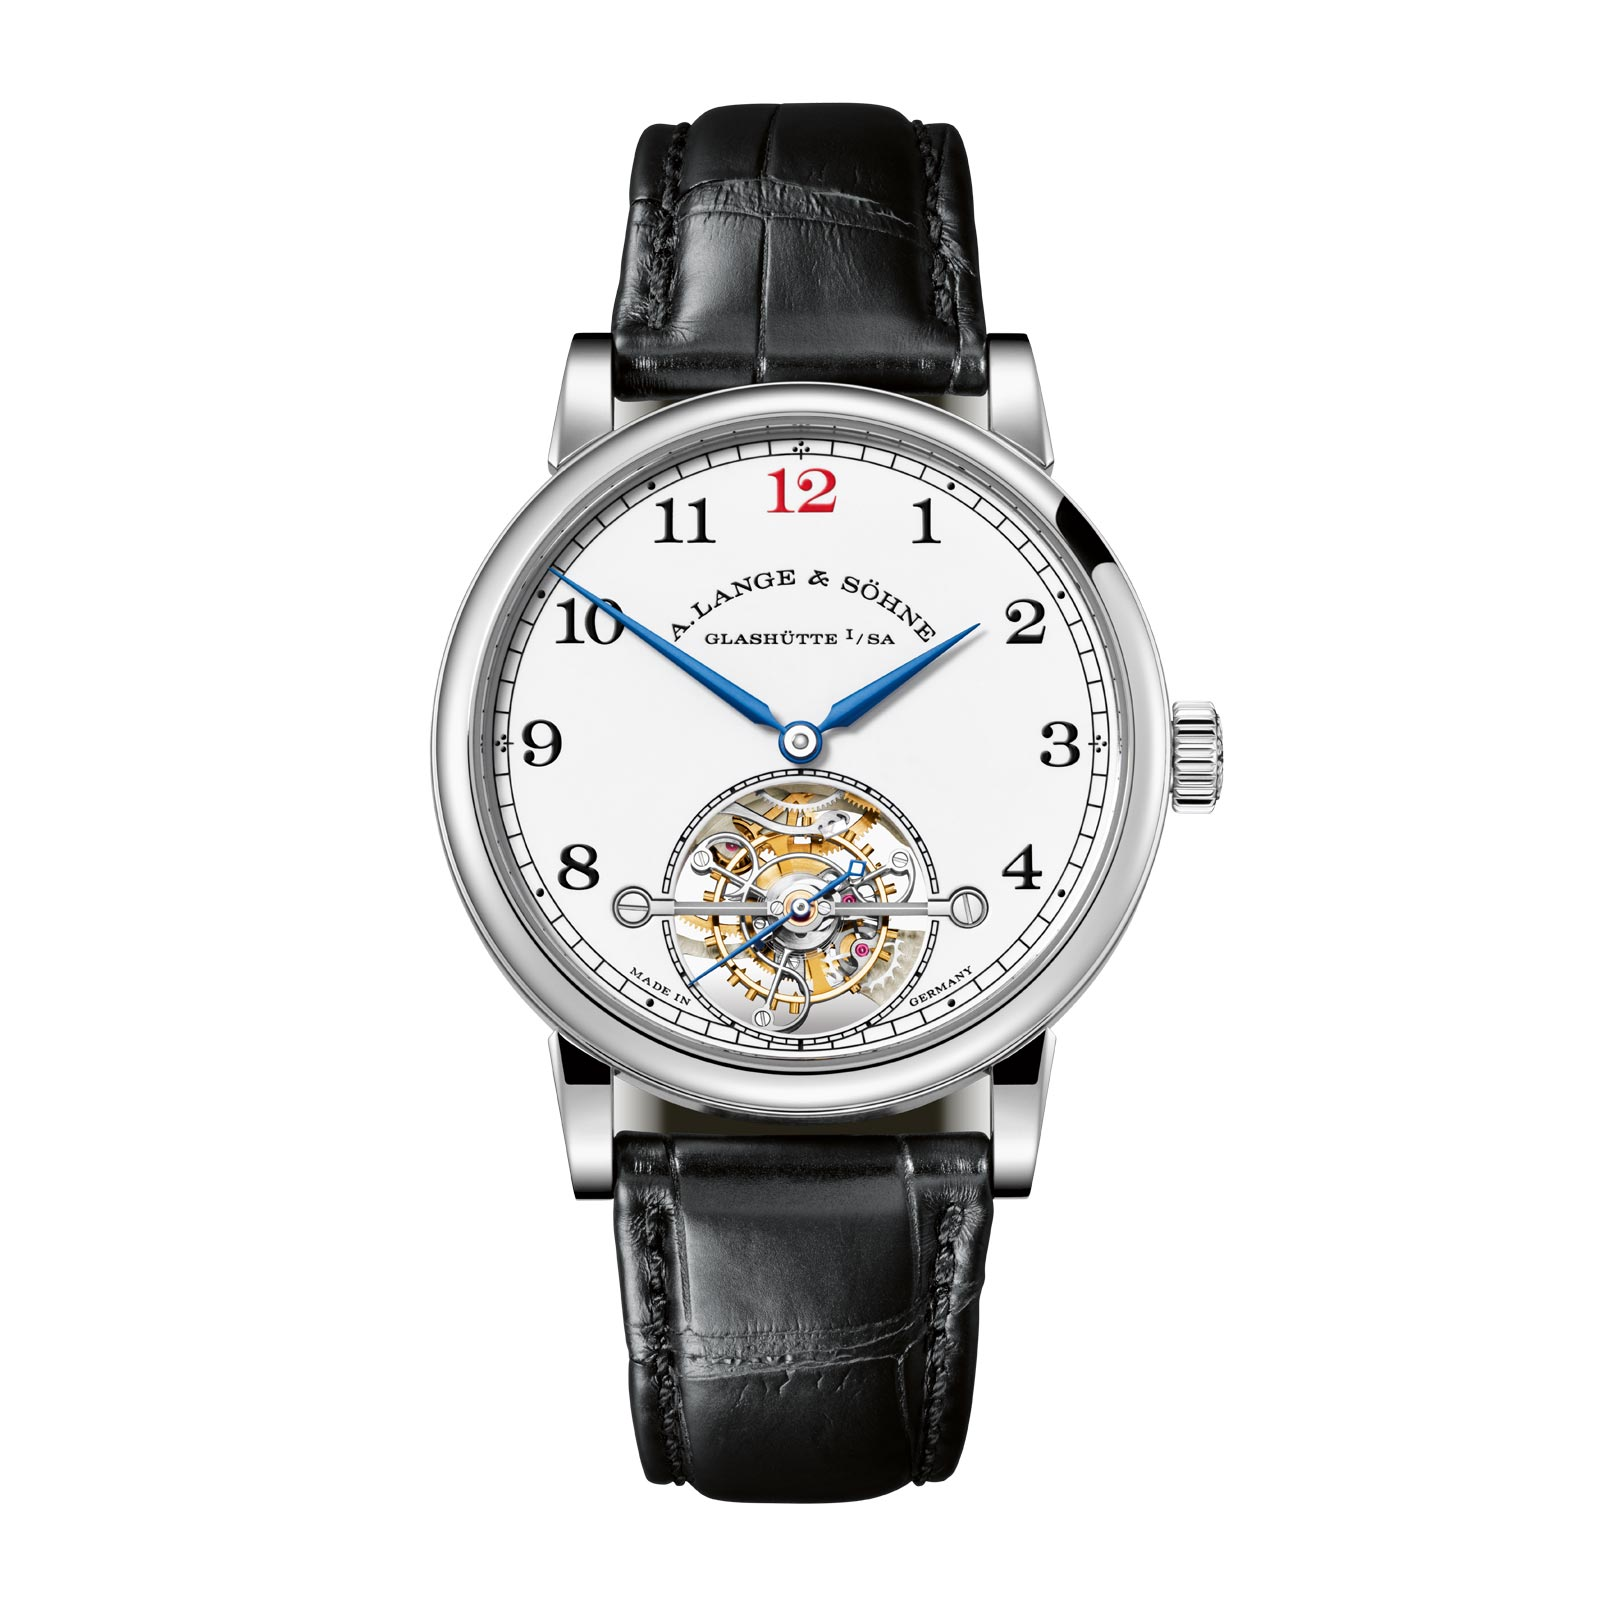 Limited-edition 1815 Tourbillon with enamel dial